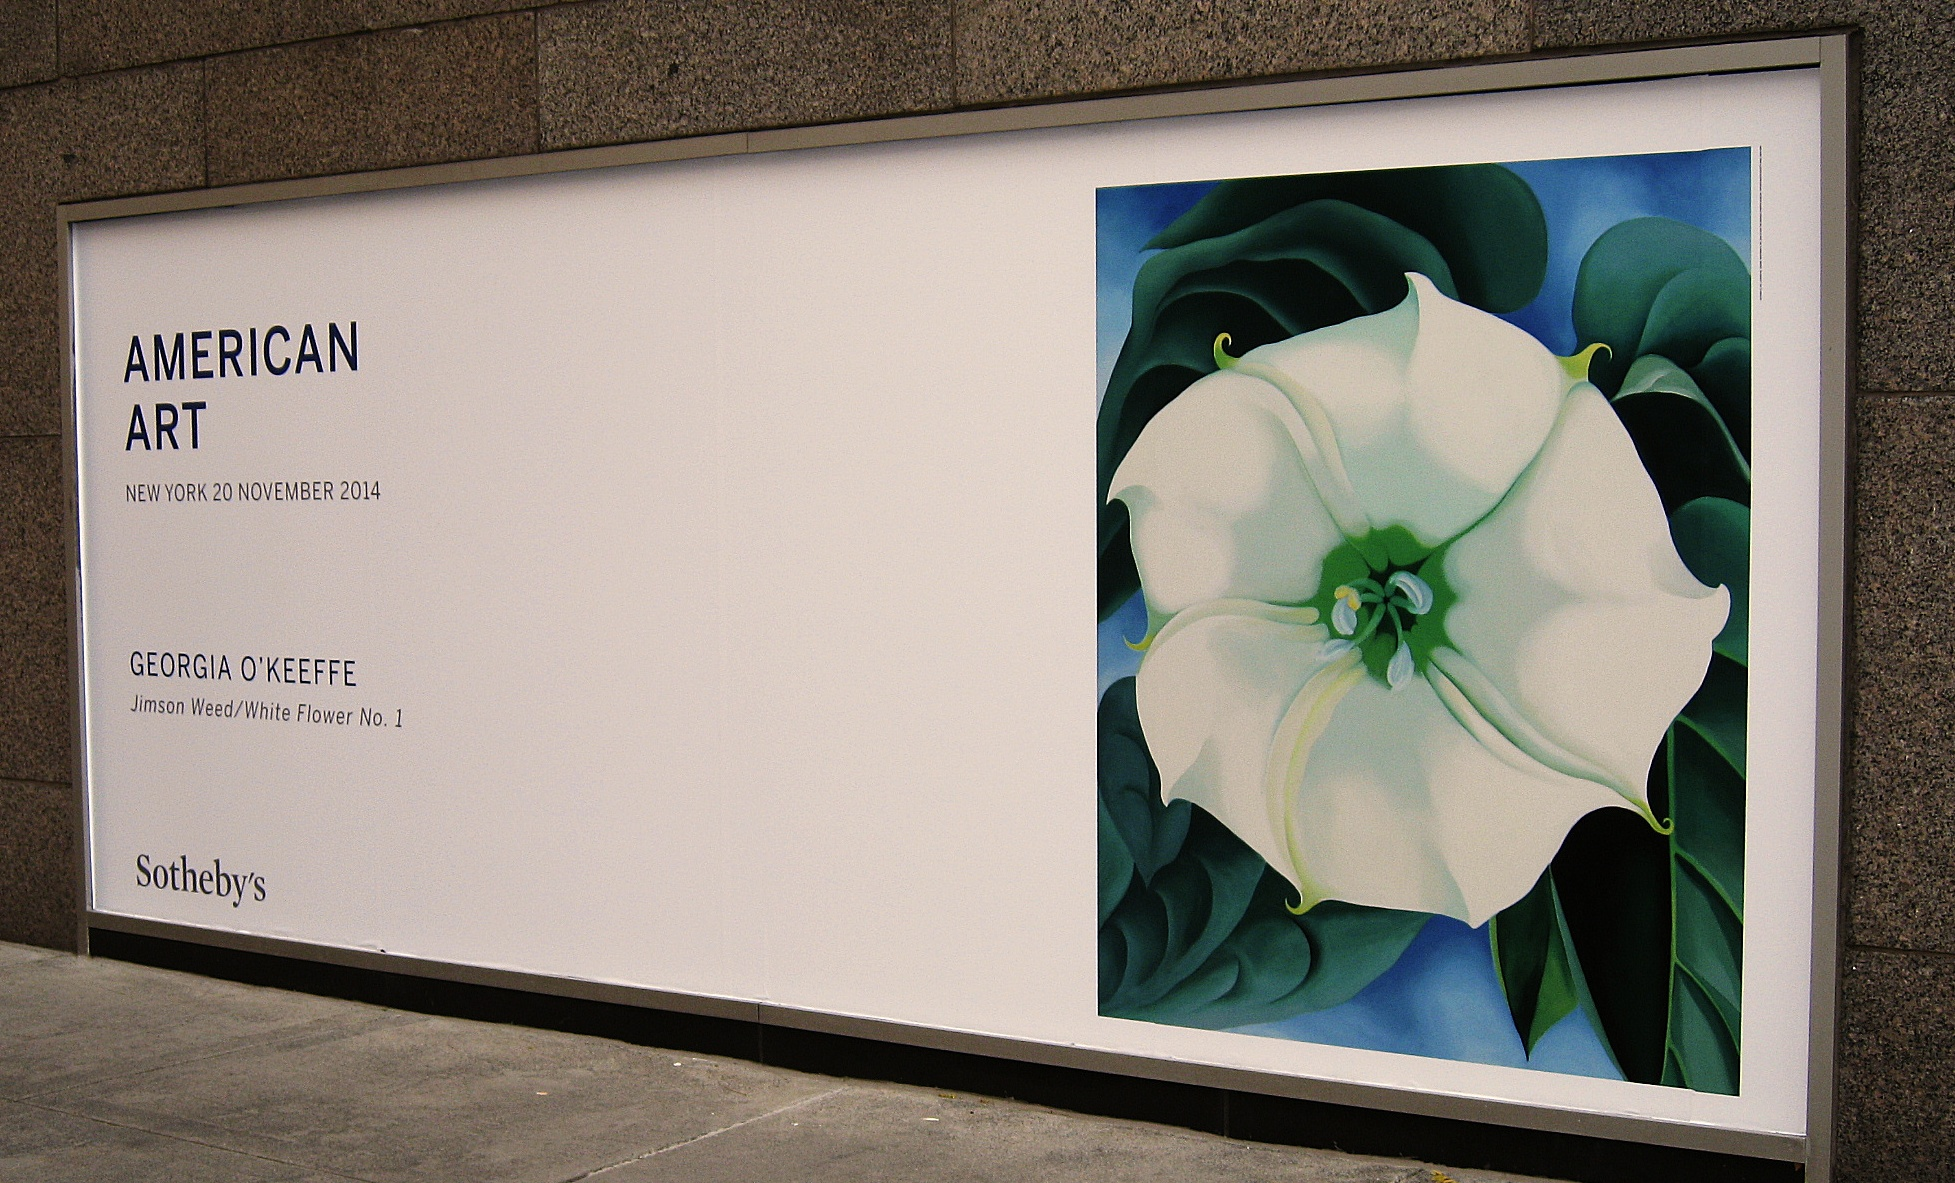 georgiaokeeffe-jimsonweed1